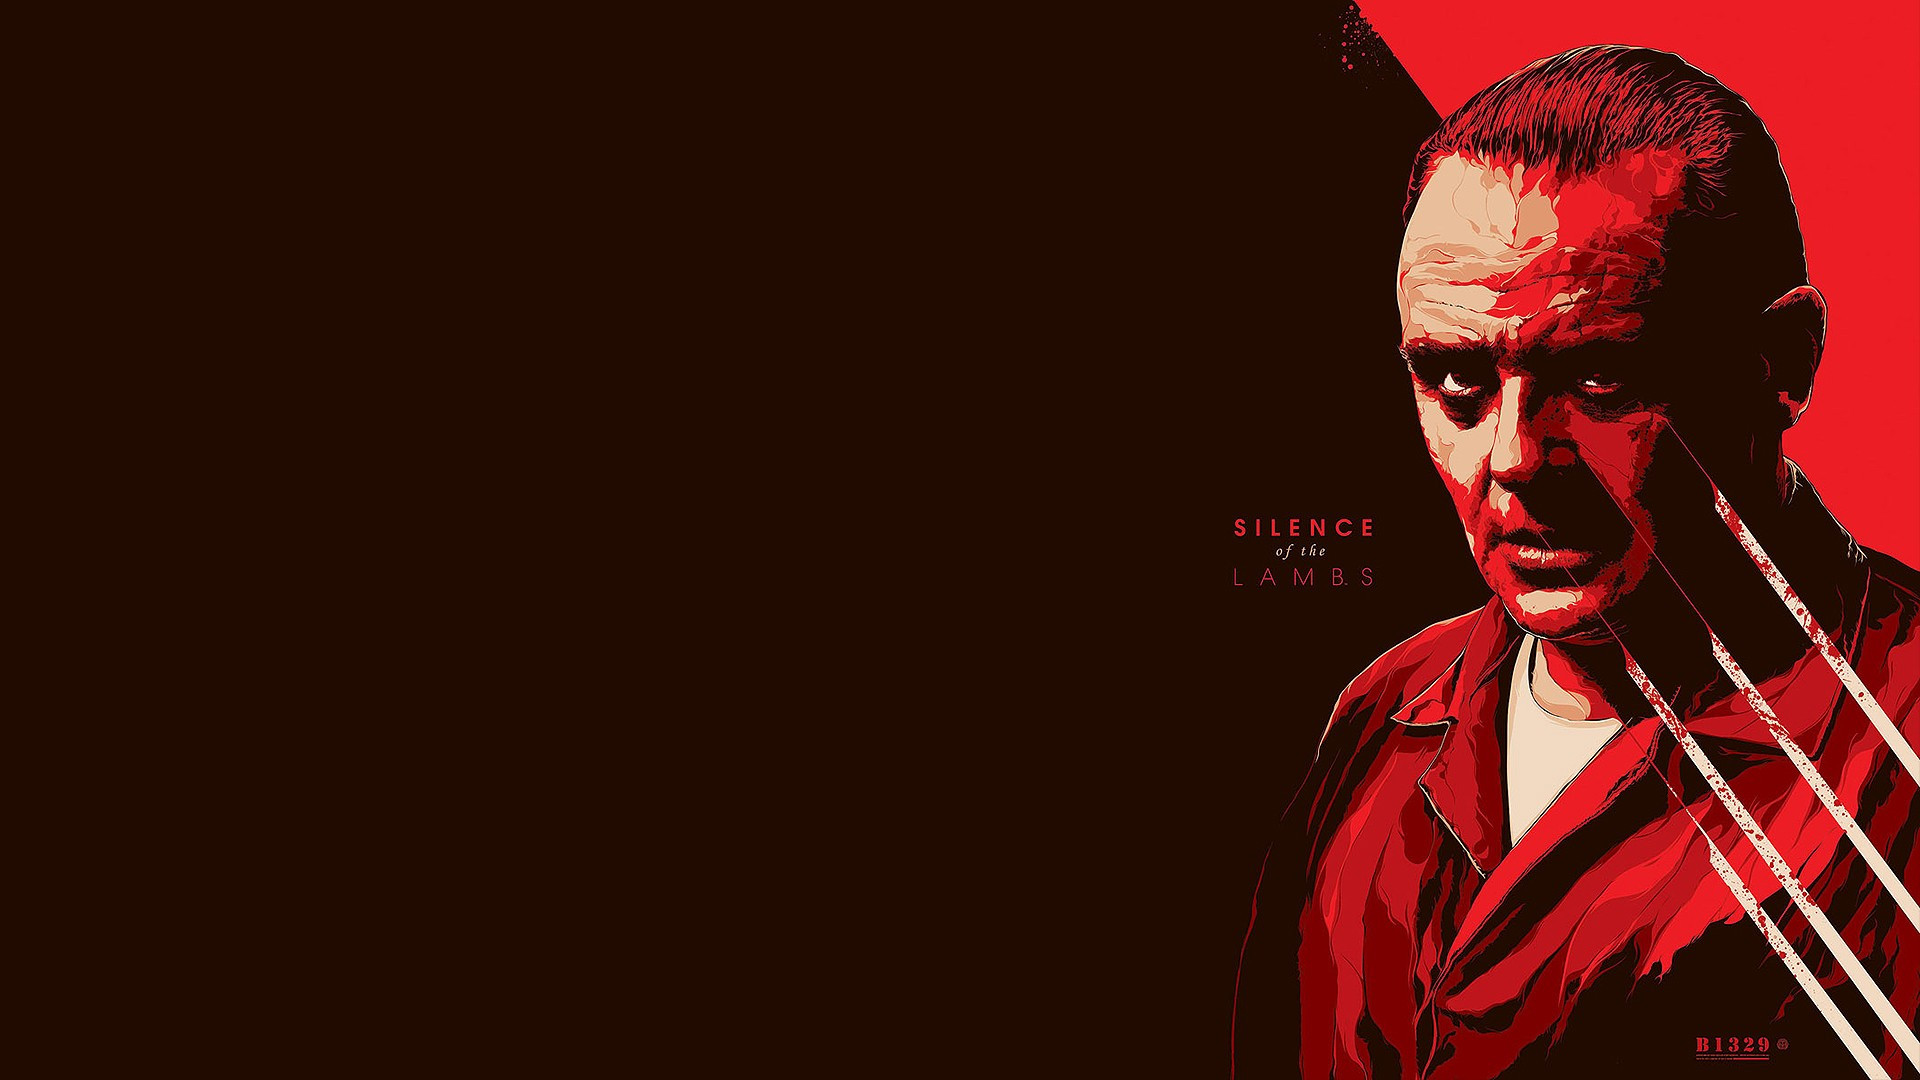 The Silence Of The Lambs HD Wallpaper Background Image 1920x1080